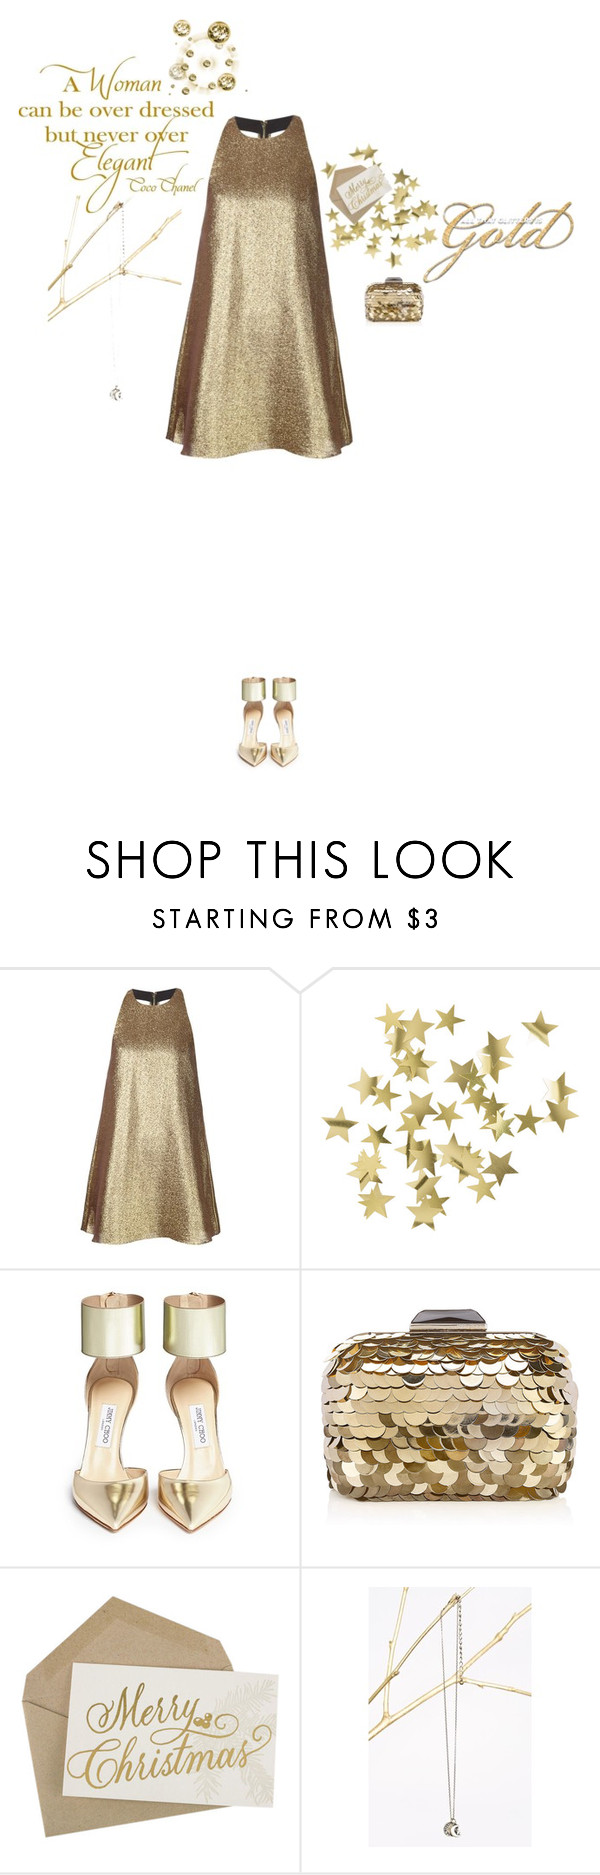 """SM7 Nº16 Open Back"" by belldraw ❤ liked on Polyvore featuring Alice + Olivia, H&M, Jimmy Choo, Chanel, stylemission and SM7"